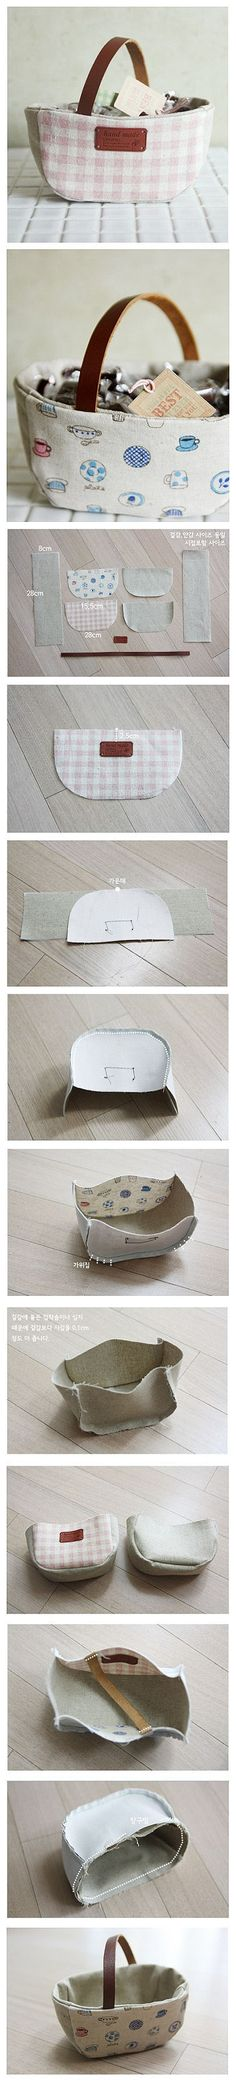 fabric basket - wond